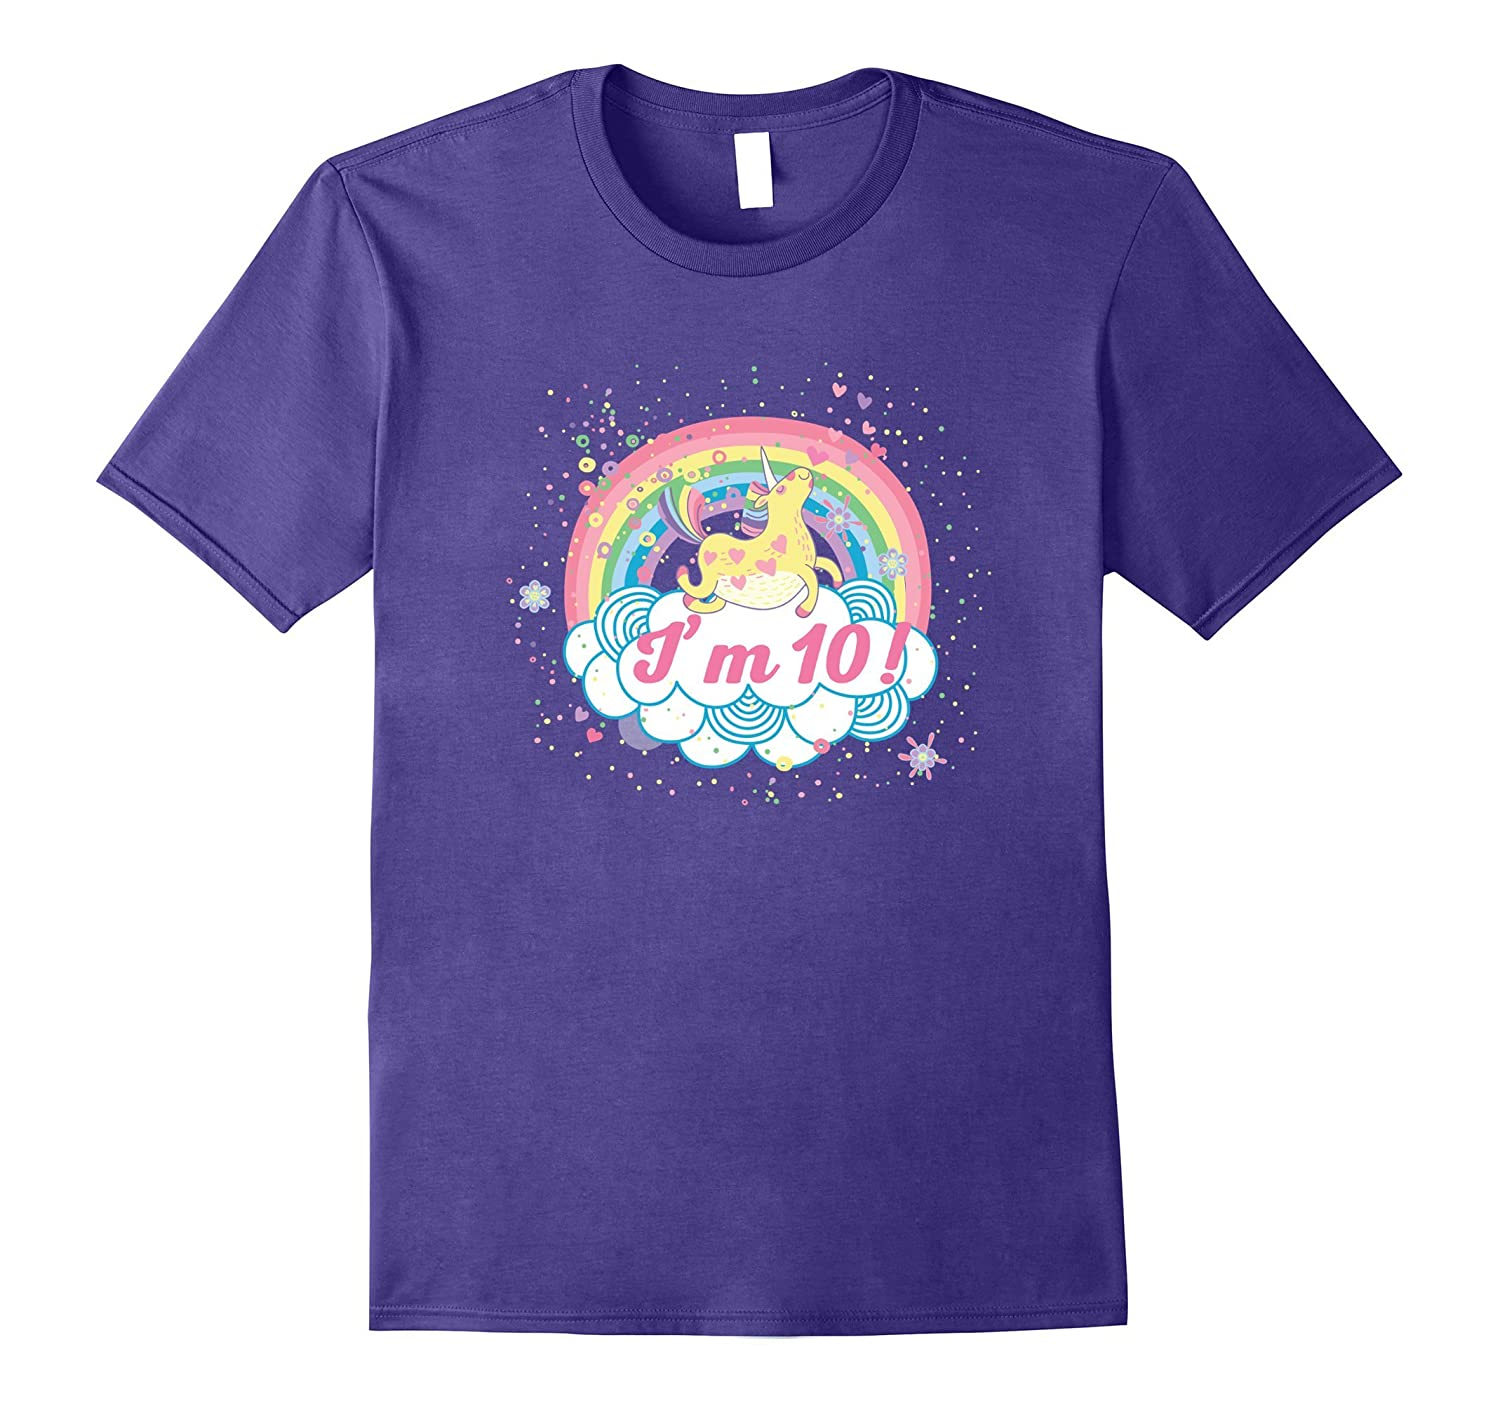 10th Birthday Shirt Girls Unicorn Rainbow Cute Party Tee-TH